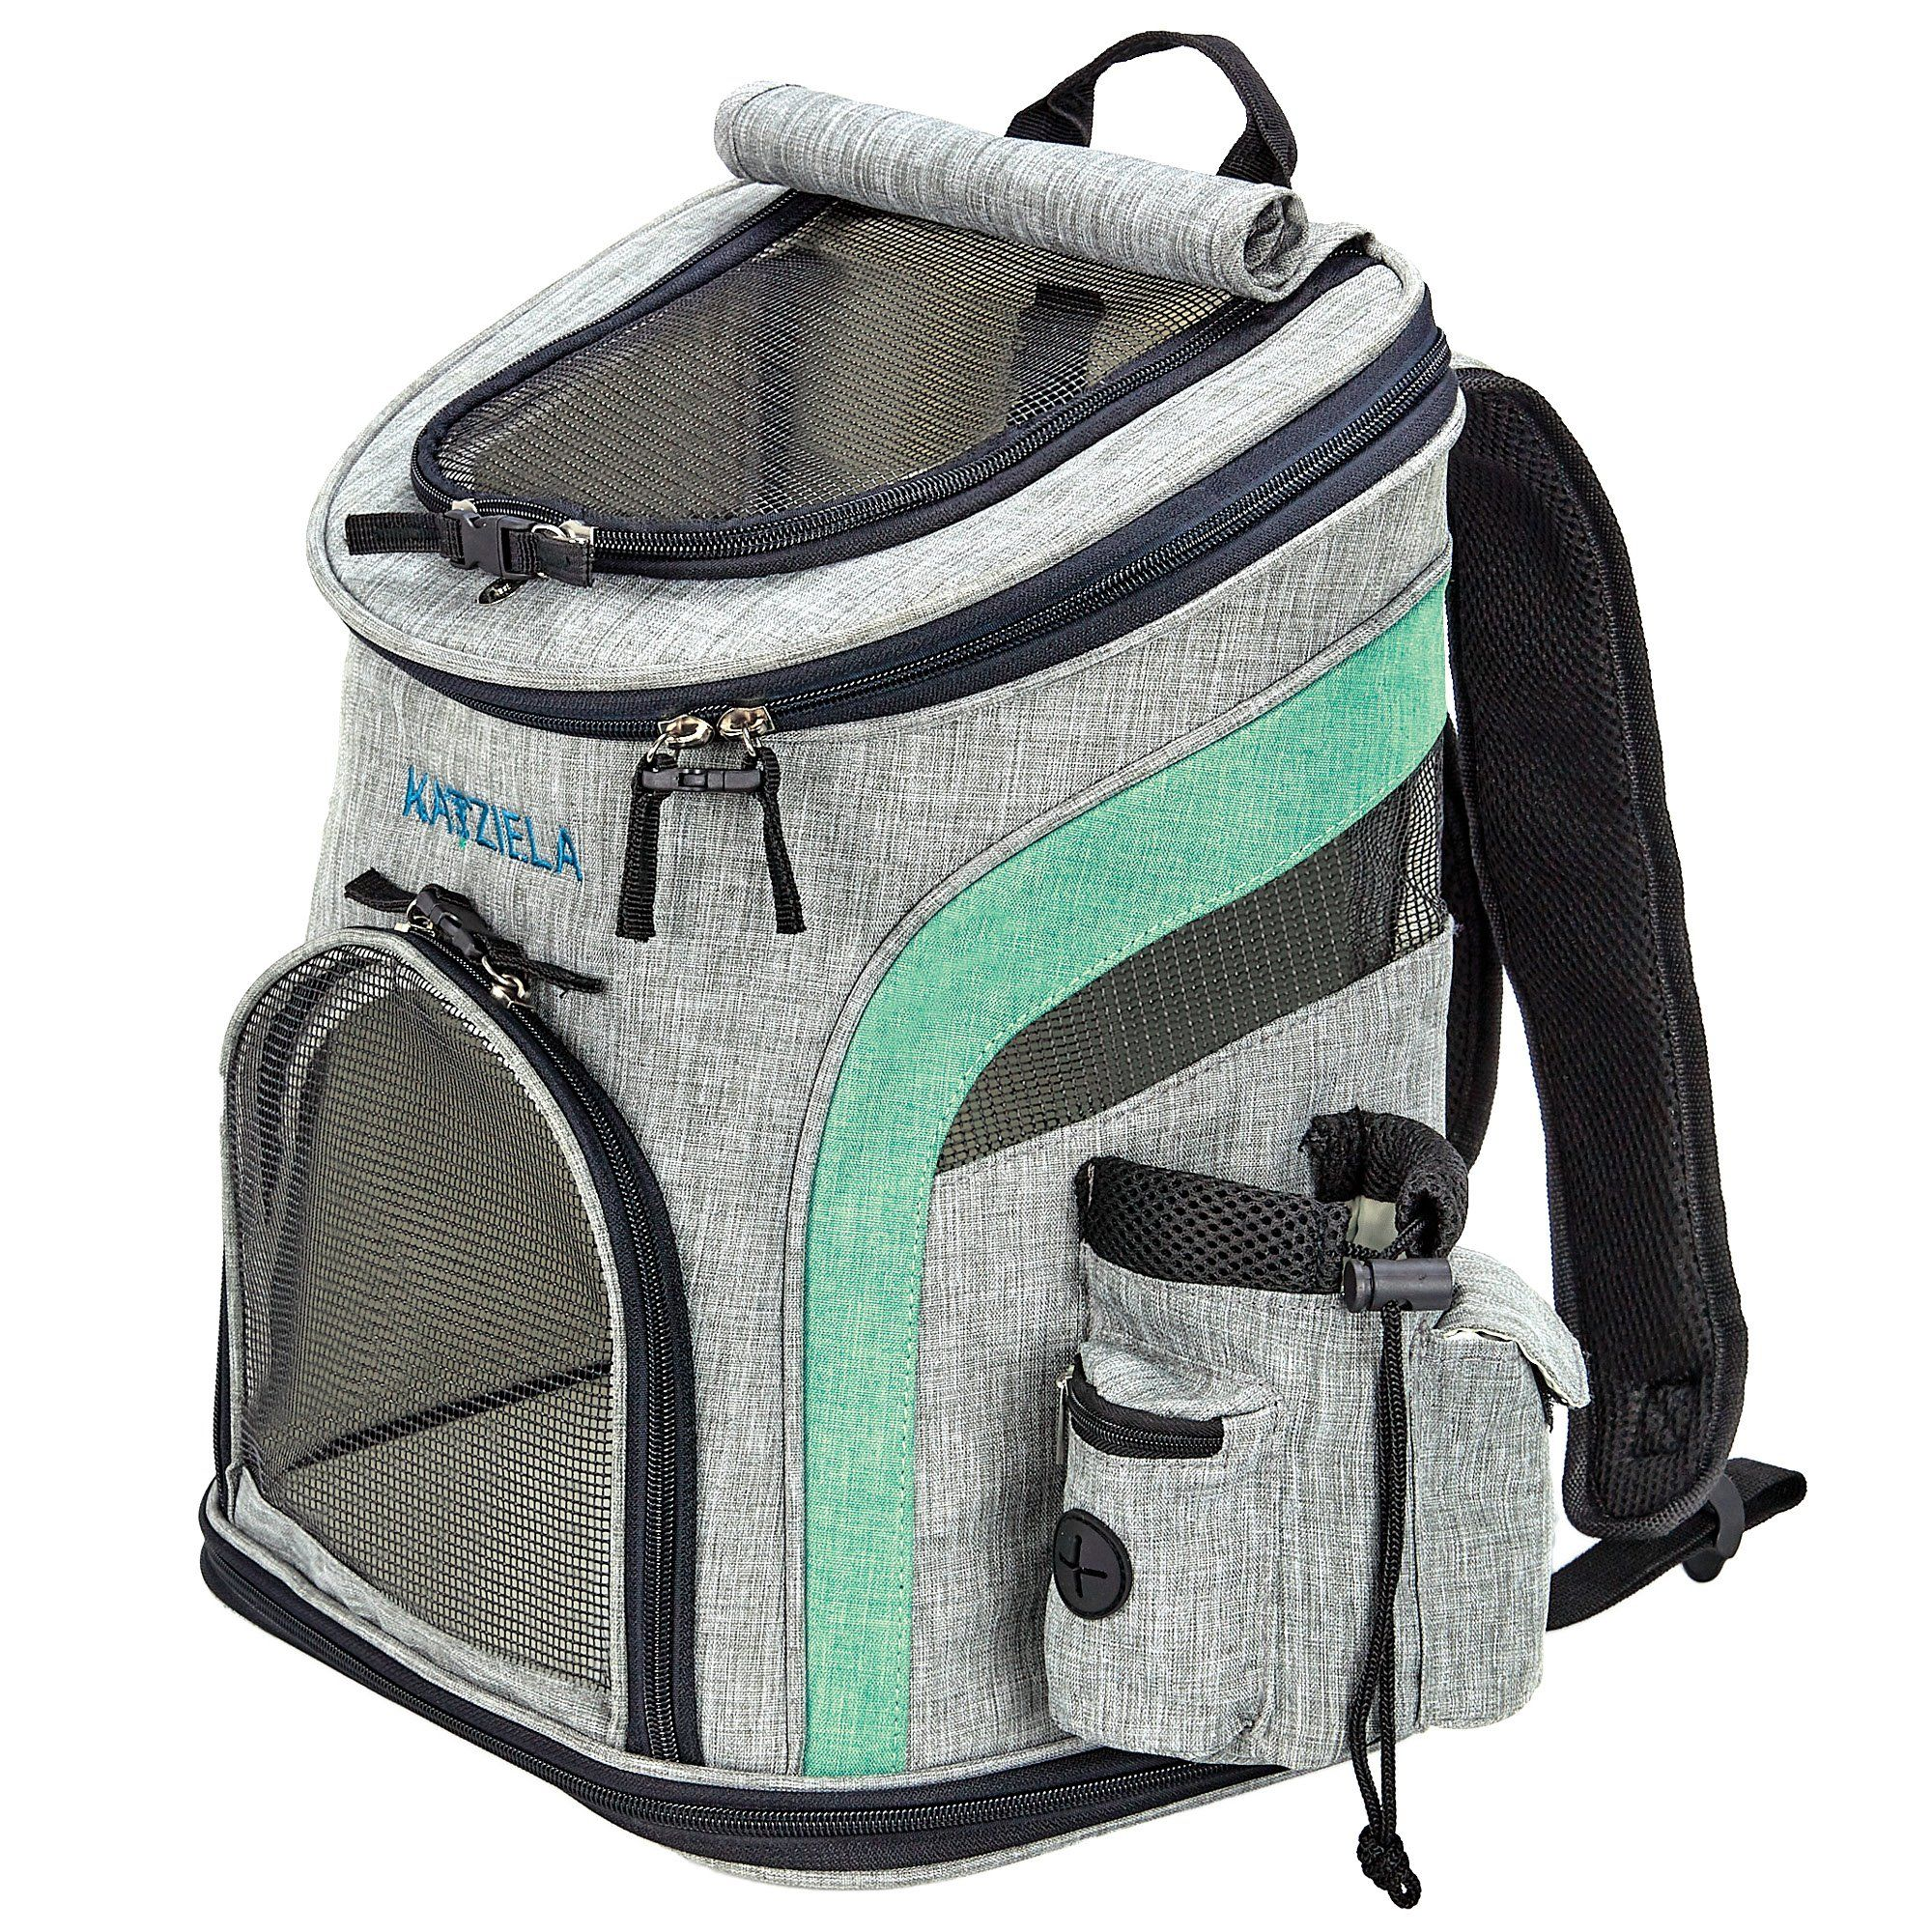 Katziela Airline Approved Backpack For Pets Dog Carrier Bag Pet